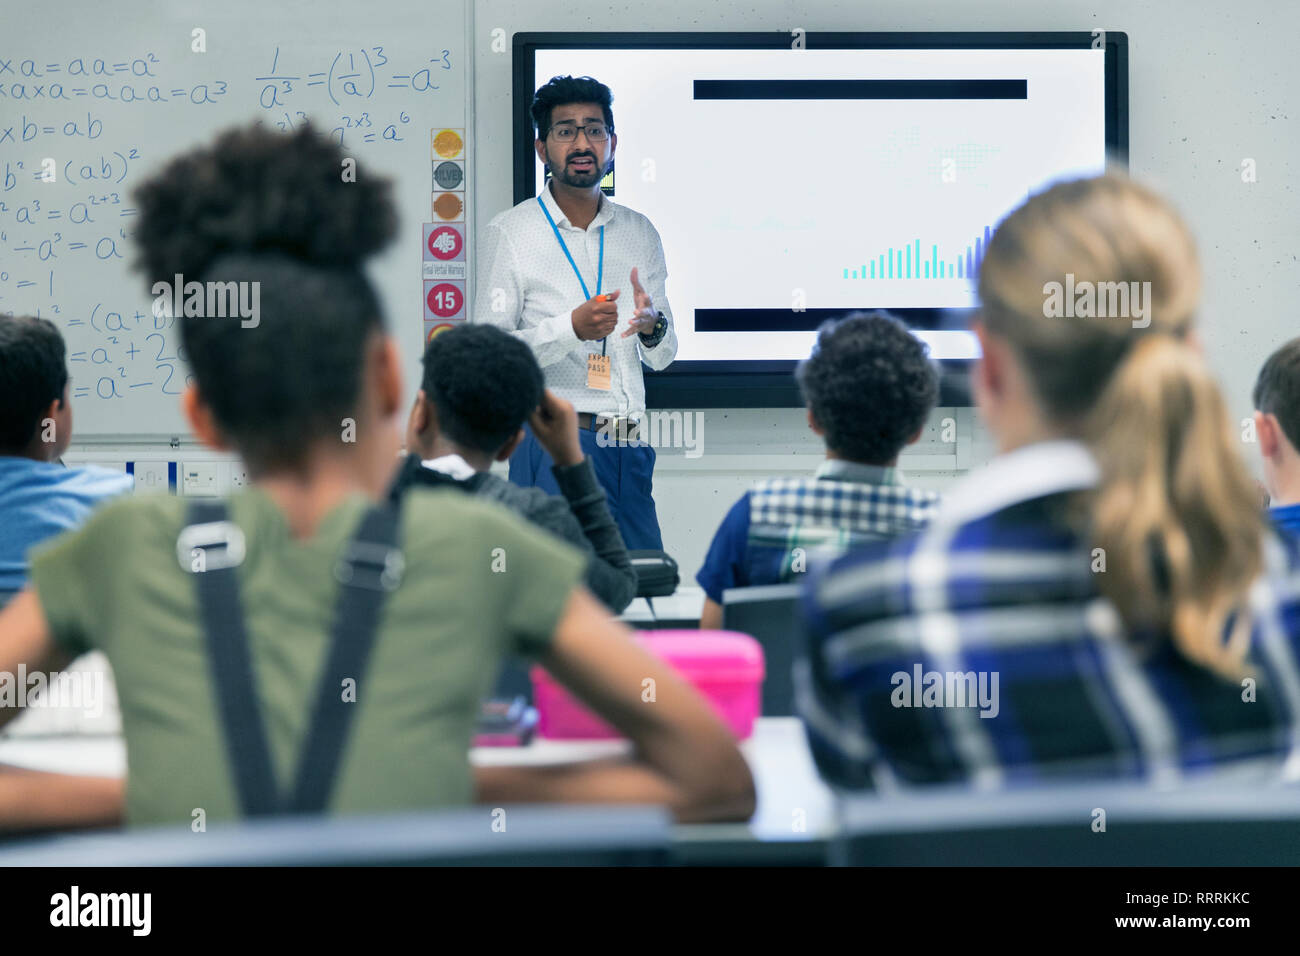 Male teacher leading lesson in classroom - Stock Image